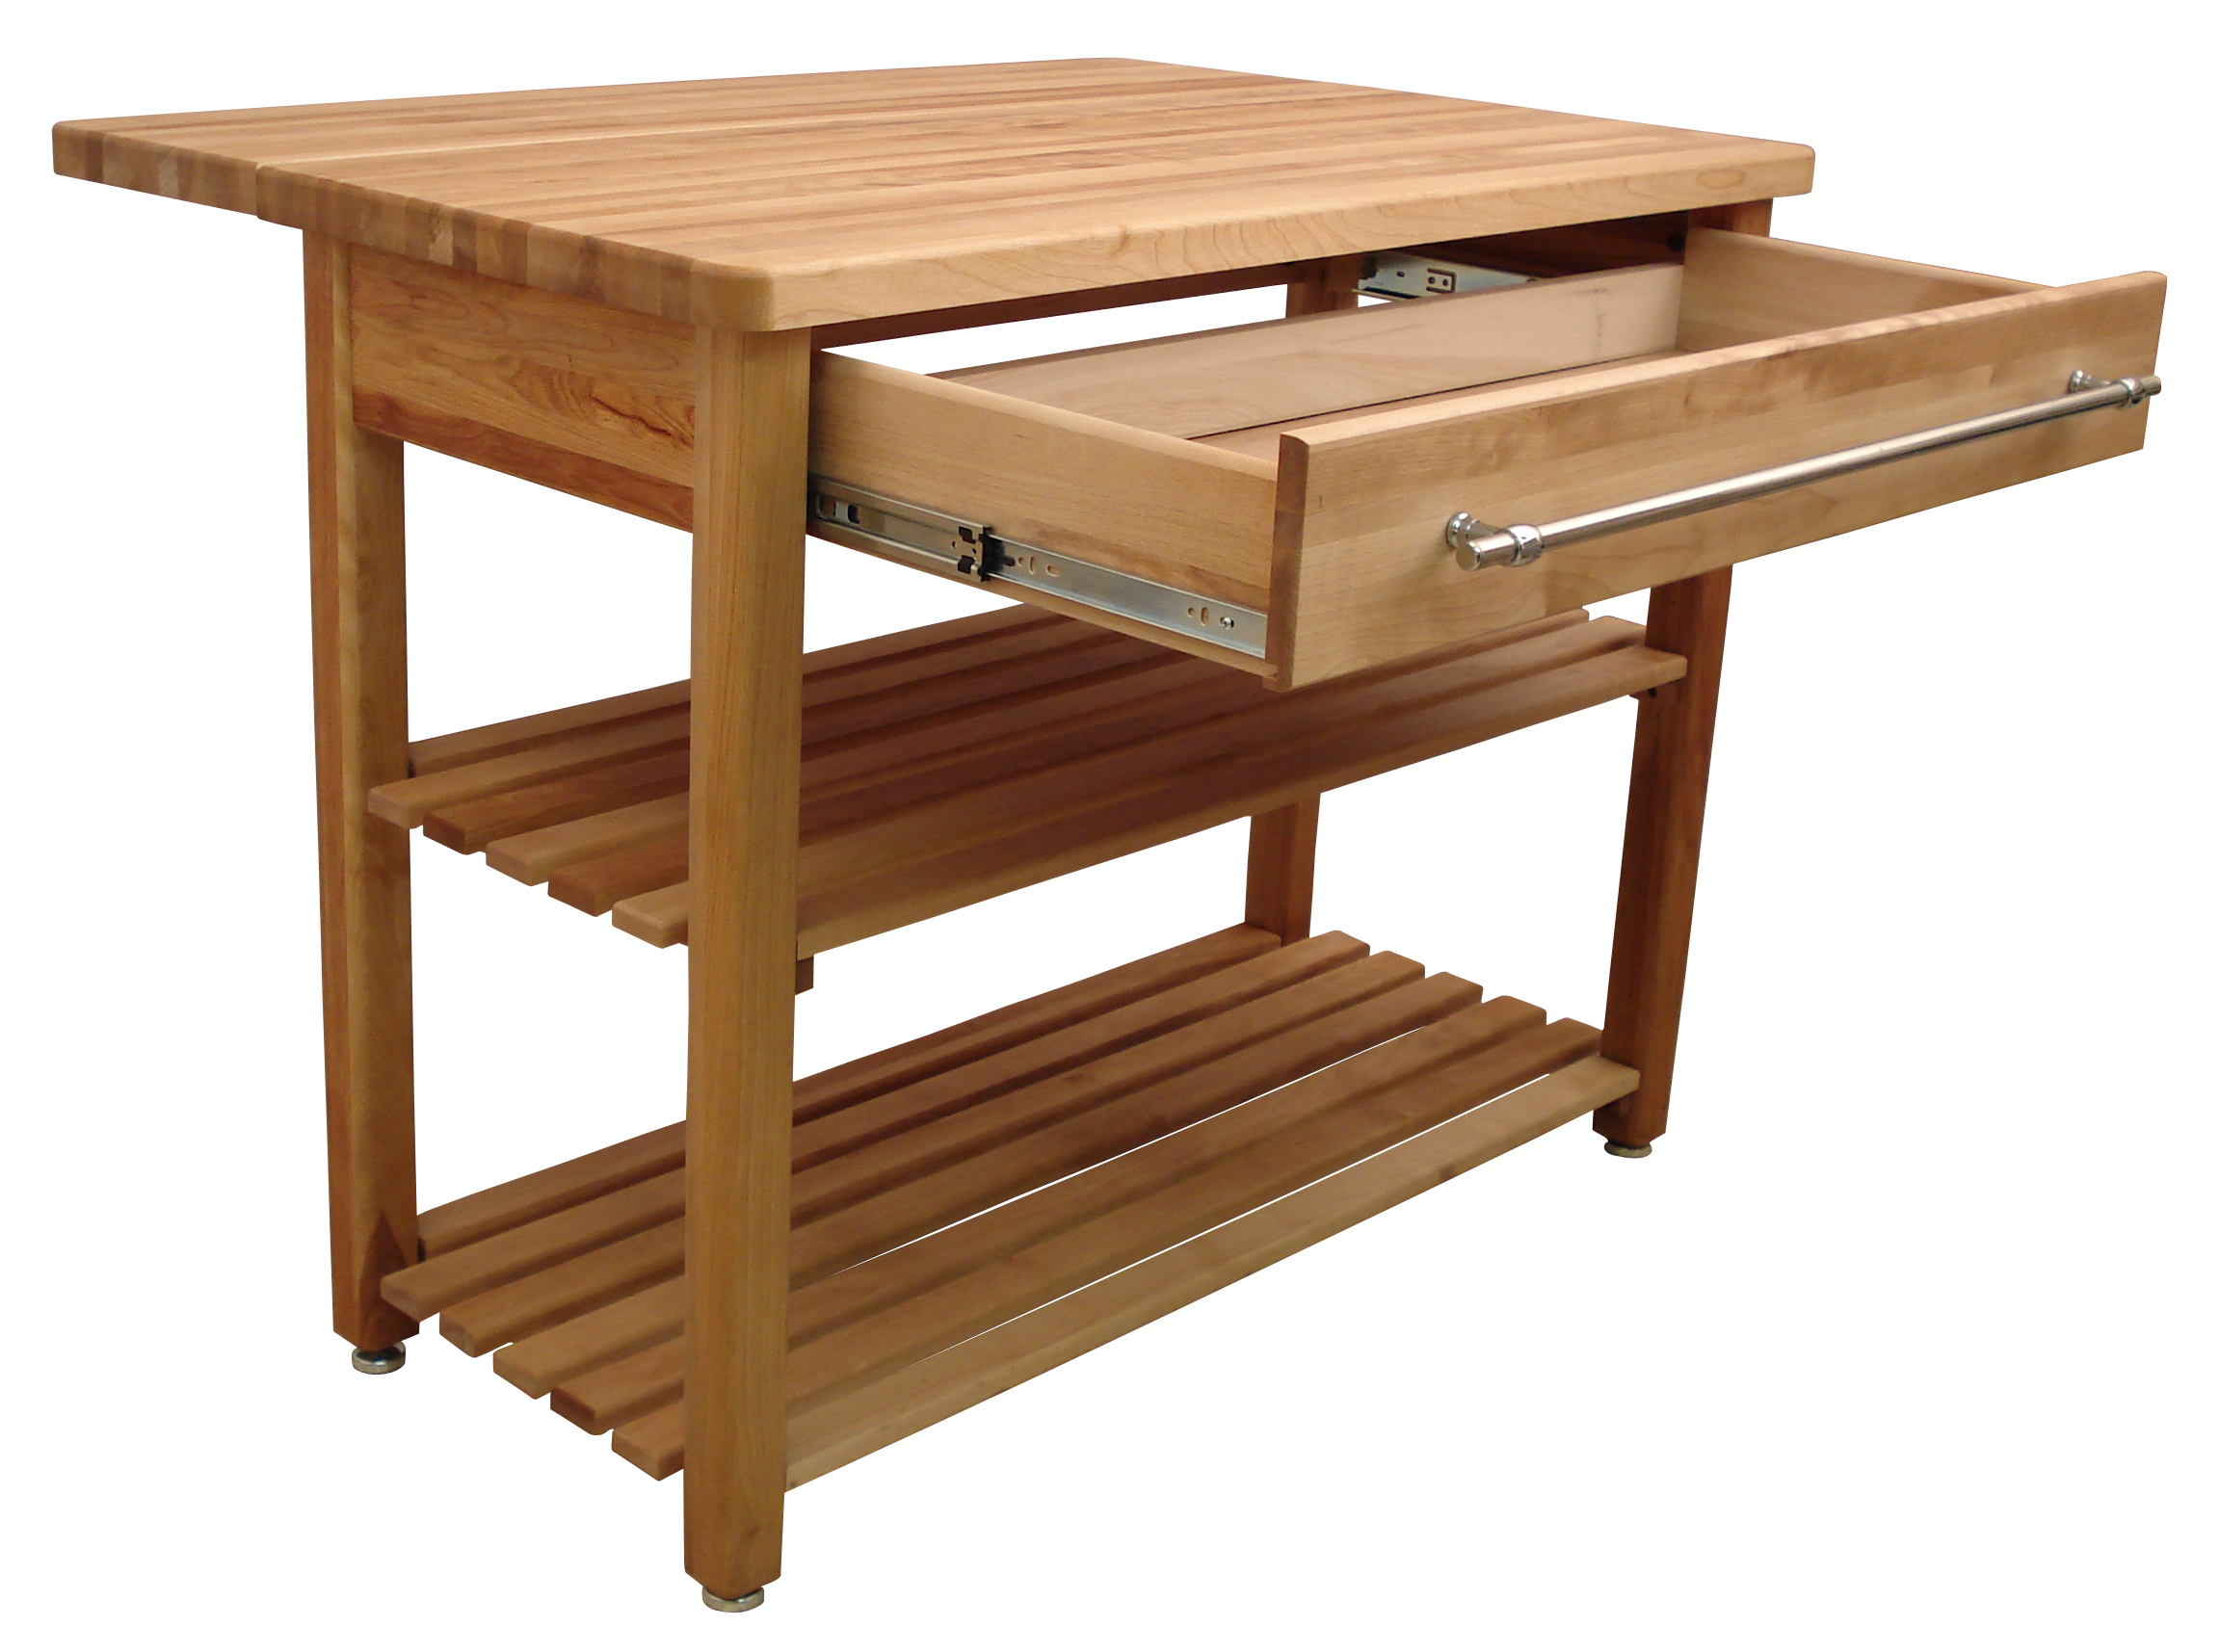 catskill craftsmen contemporary harvest table with drop leaf kitchen island 3 0